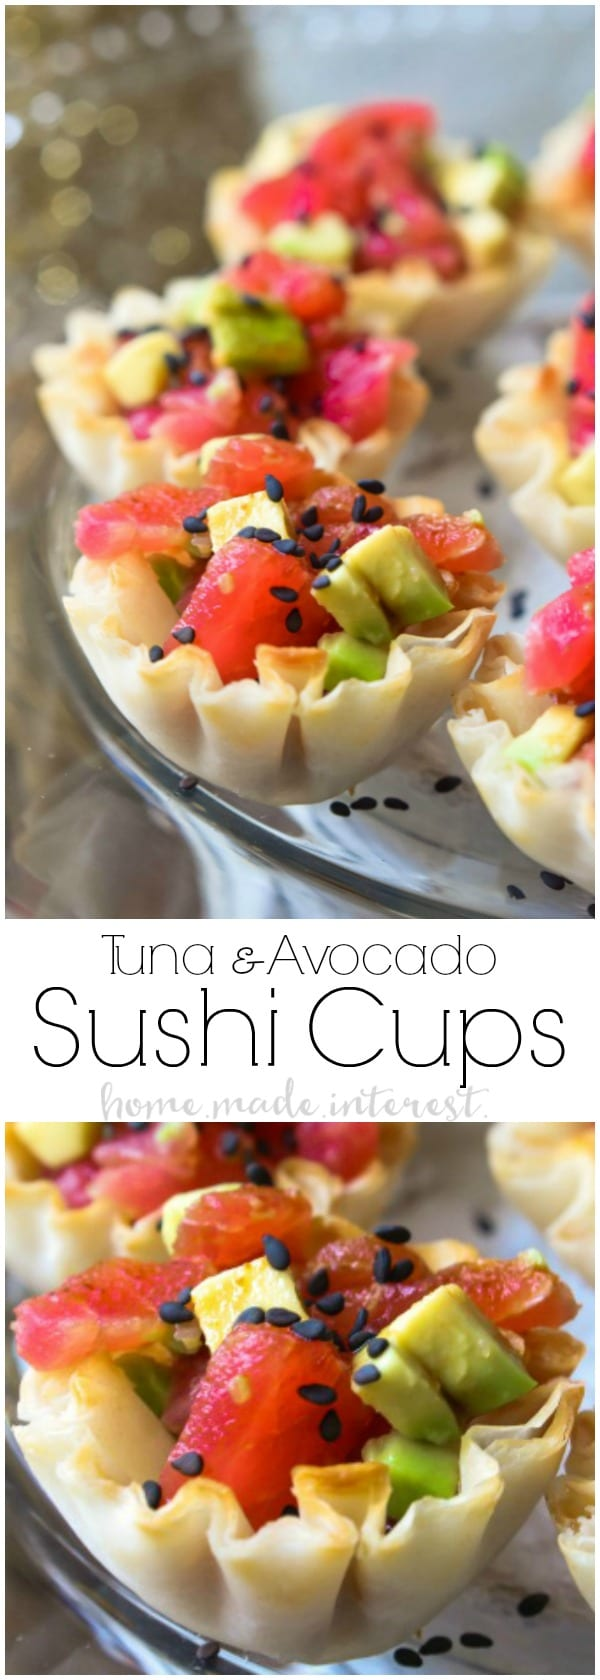 Tuna Avocado Sushi Cups | This is an easy appetizer recipe that is perfect for a dinner party or cocktail party. Enjoy these Tuna Avocado Sushi Cups as a New Year's Eve appetizer. It is a sushi appetizer that anyone can make! #newyear #sushi #feedfeed #appetizer